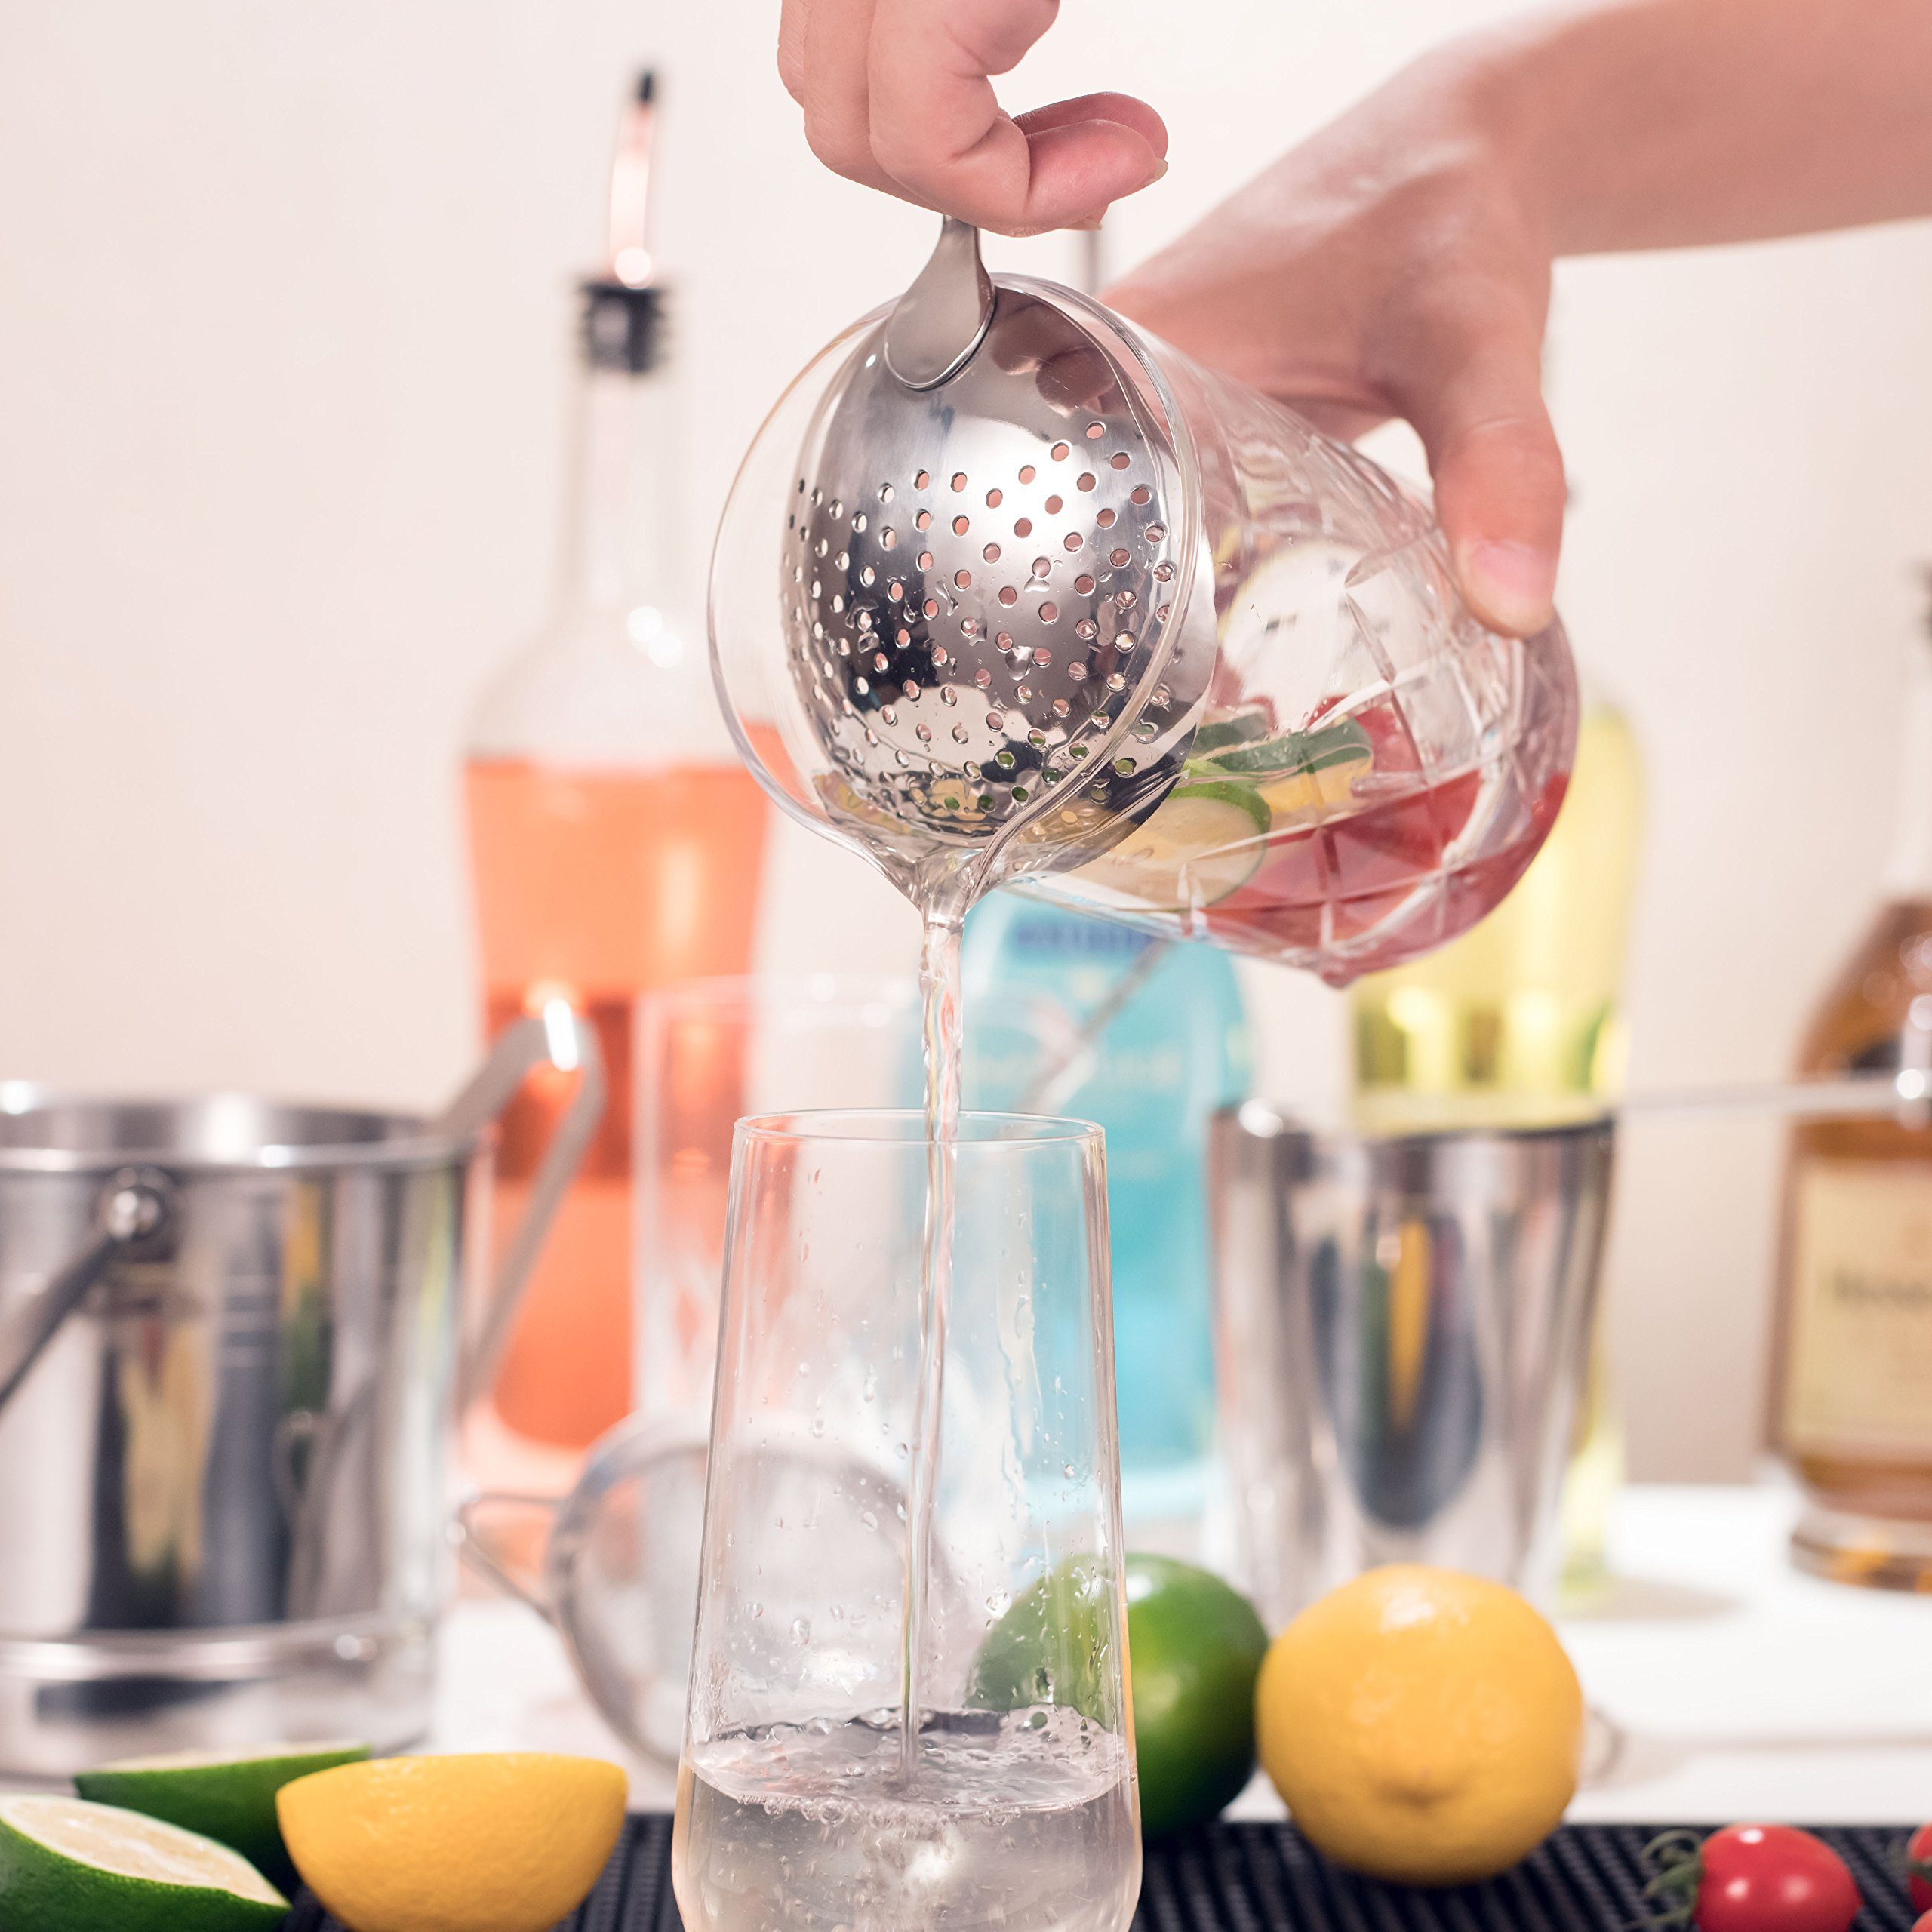 Cocktail Strainer Set for Professional Bartenders and Mixologists – Stainless Steel Hawthorne Strainer, Julep Strainer and Fine Mesh Conical Strainer by ALOONO (Image #5)